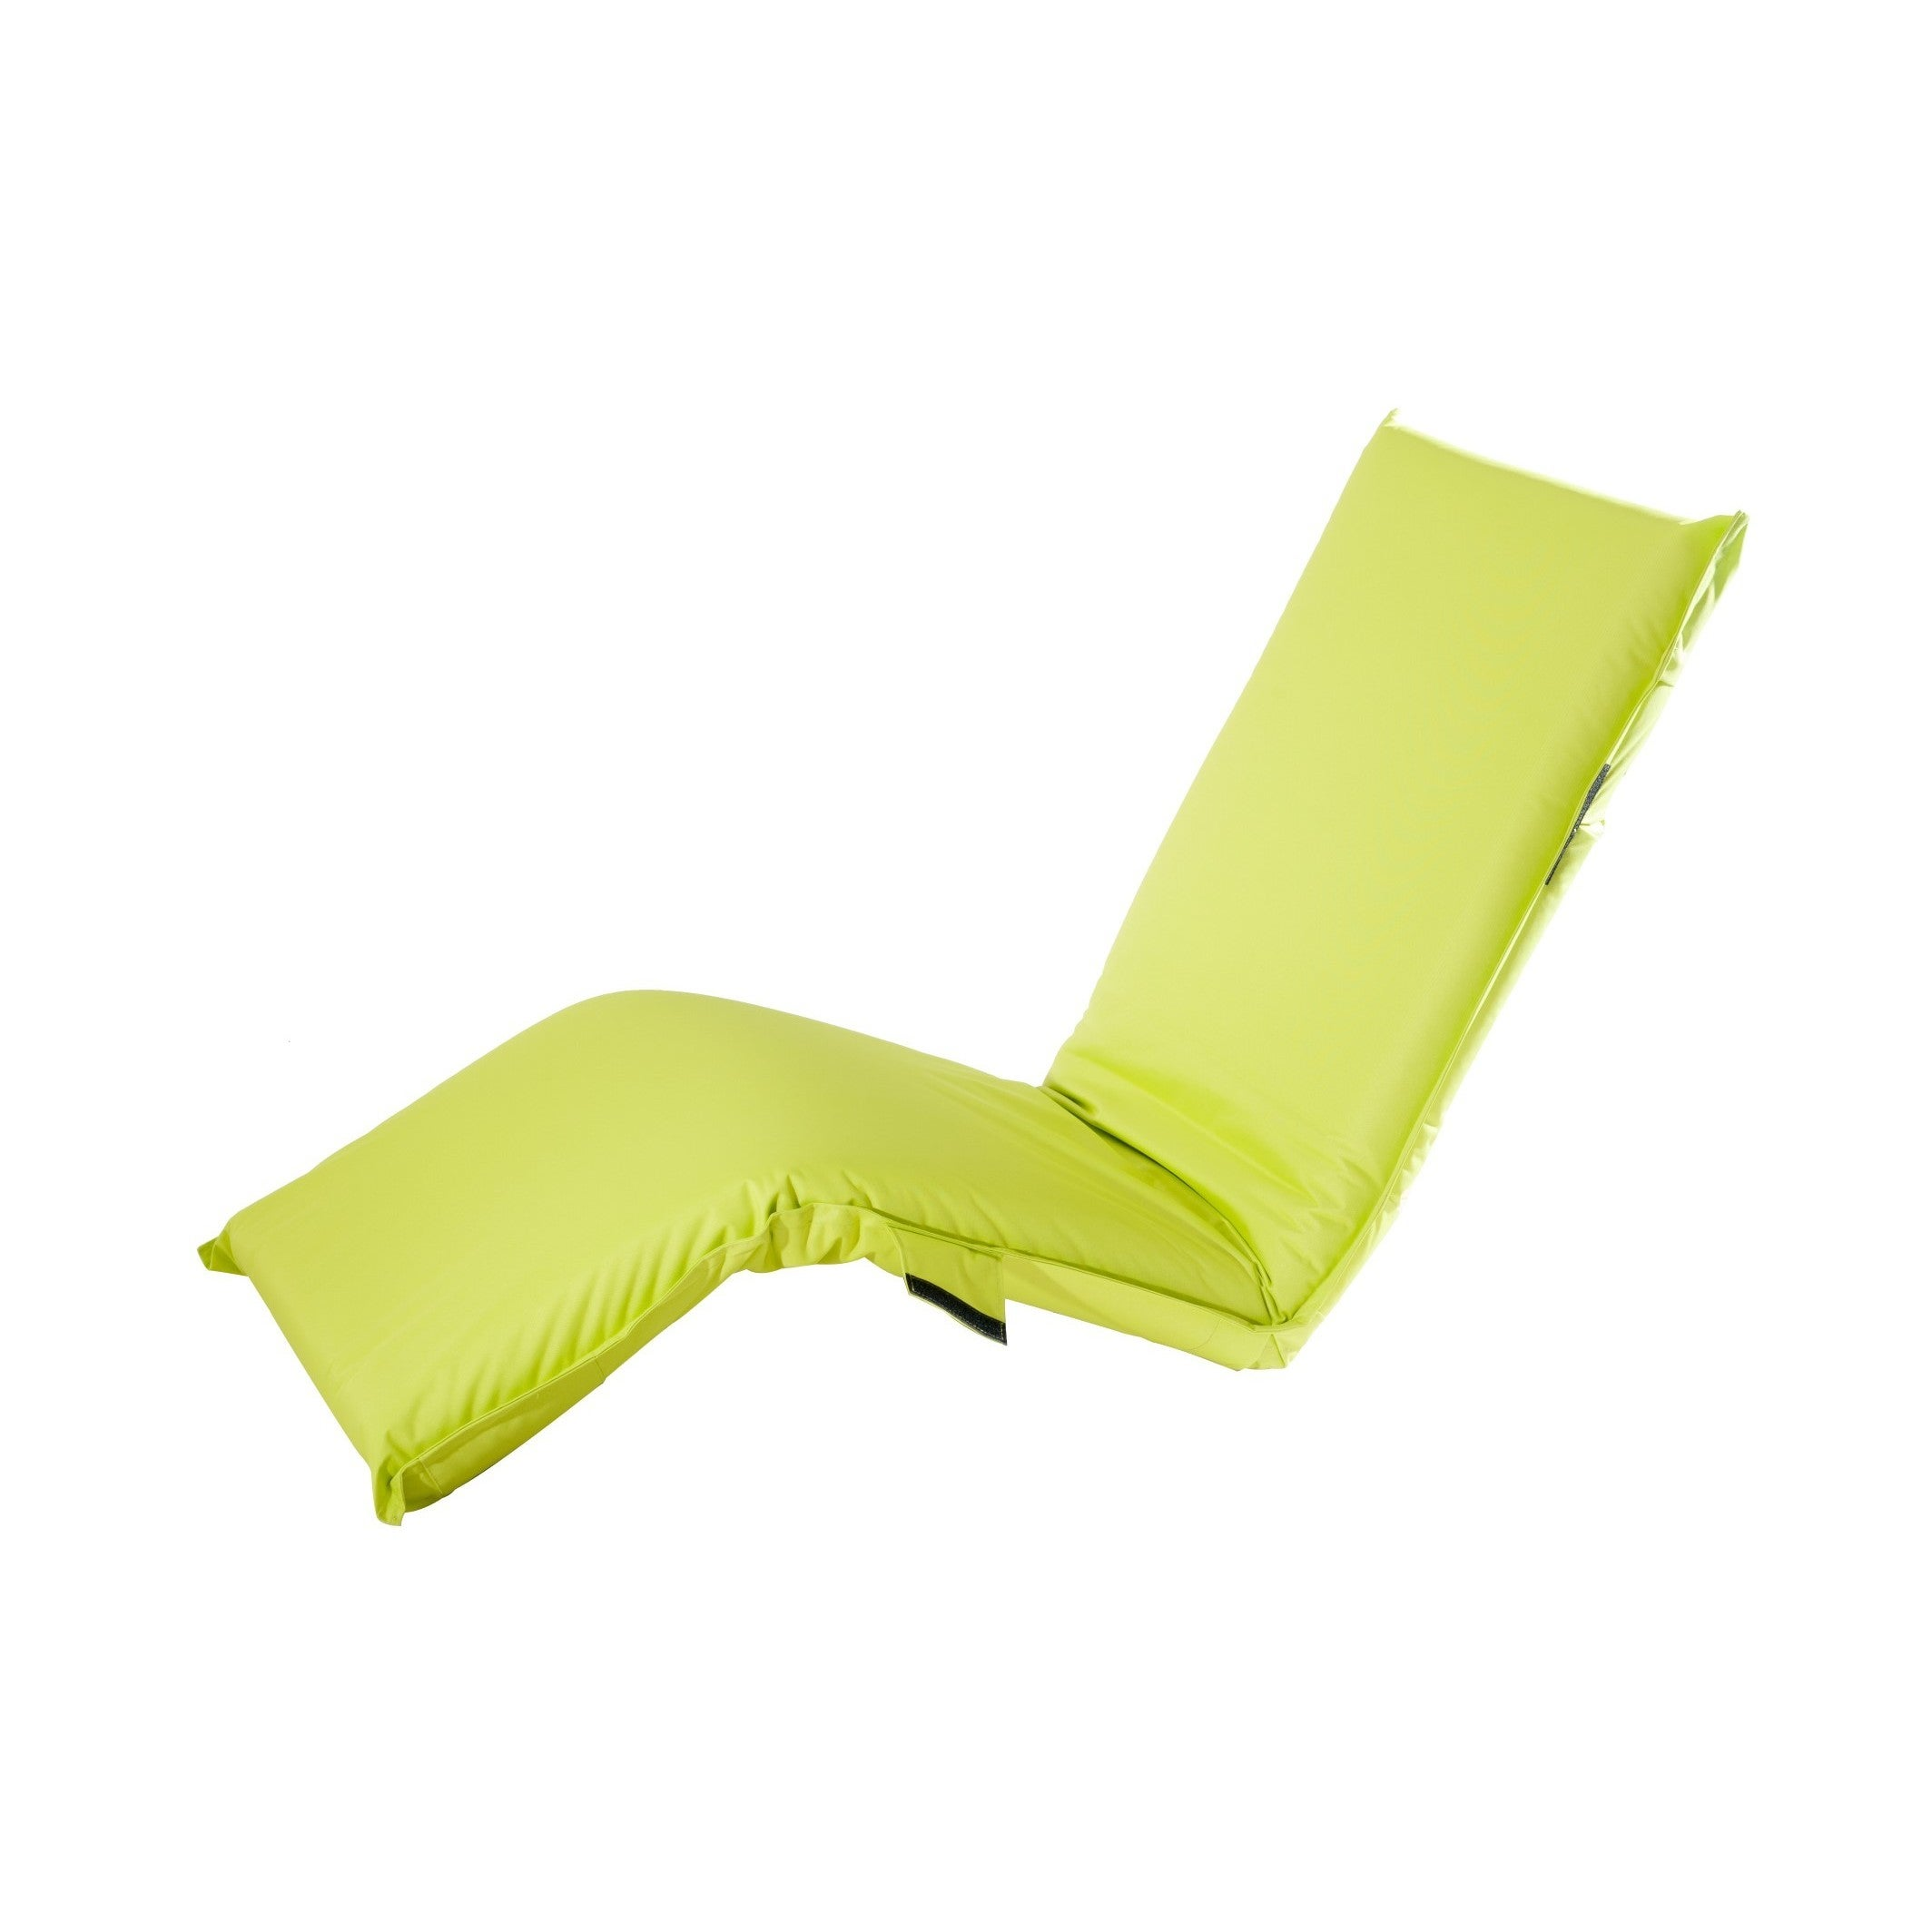 Shop Blue Green Orange Polyester Adjustable Lounge Chair